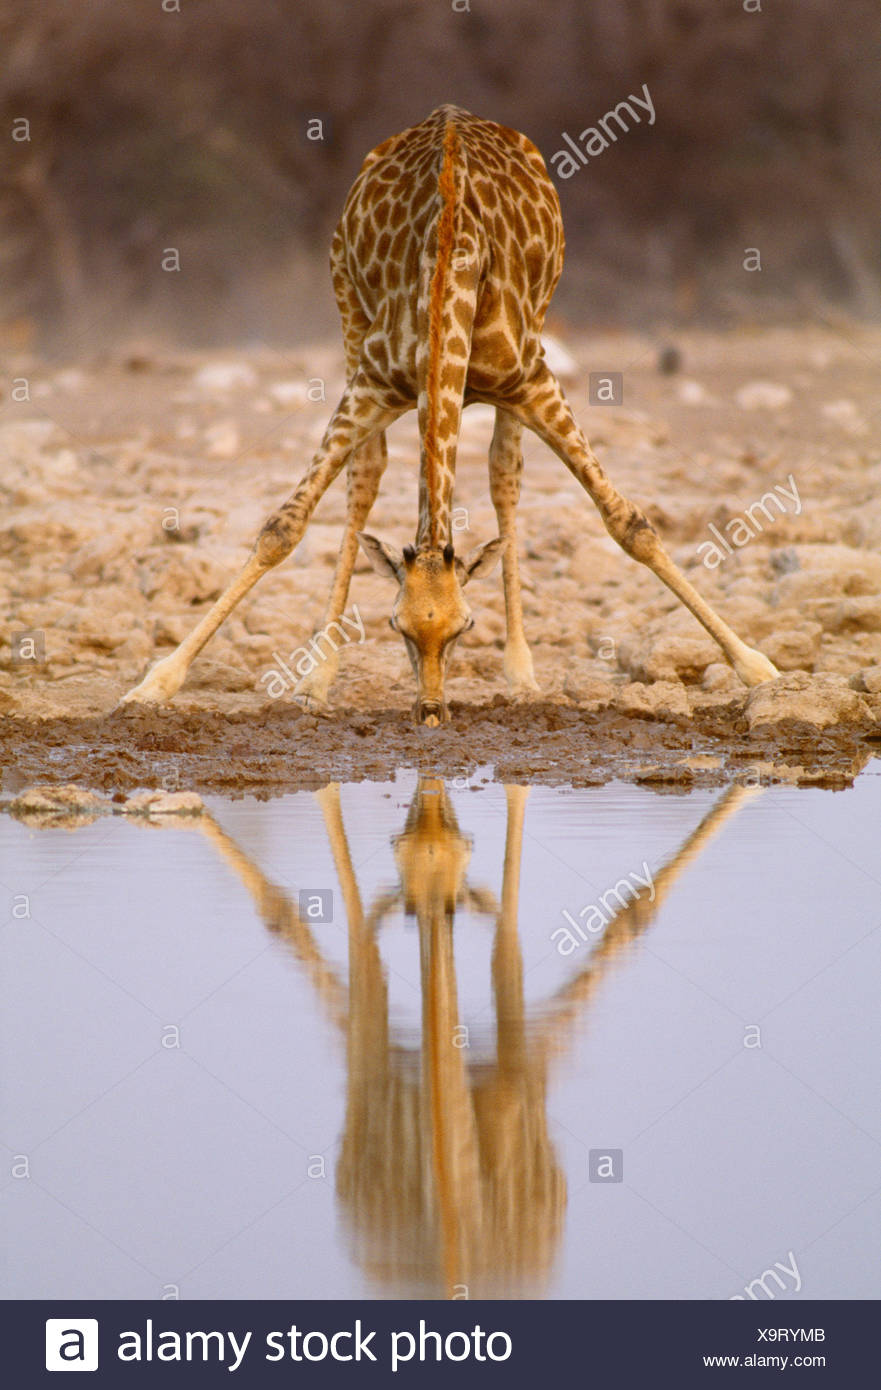 Girafe d'Afrique du Sud, Etosha National Park, Namibie Photo Stock